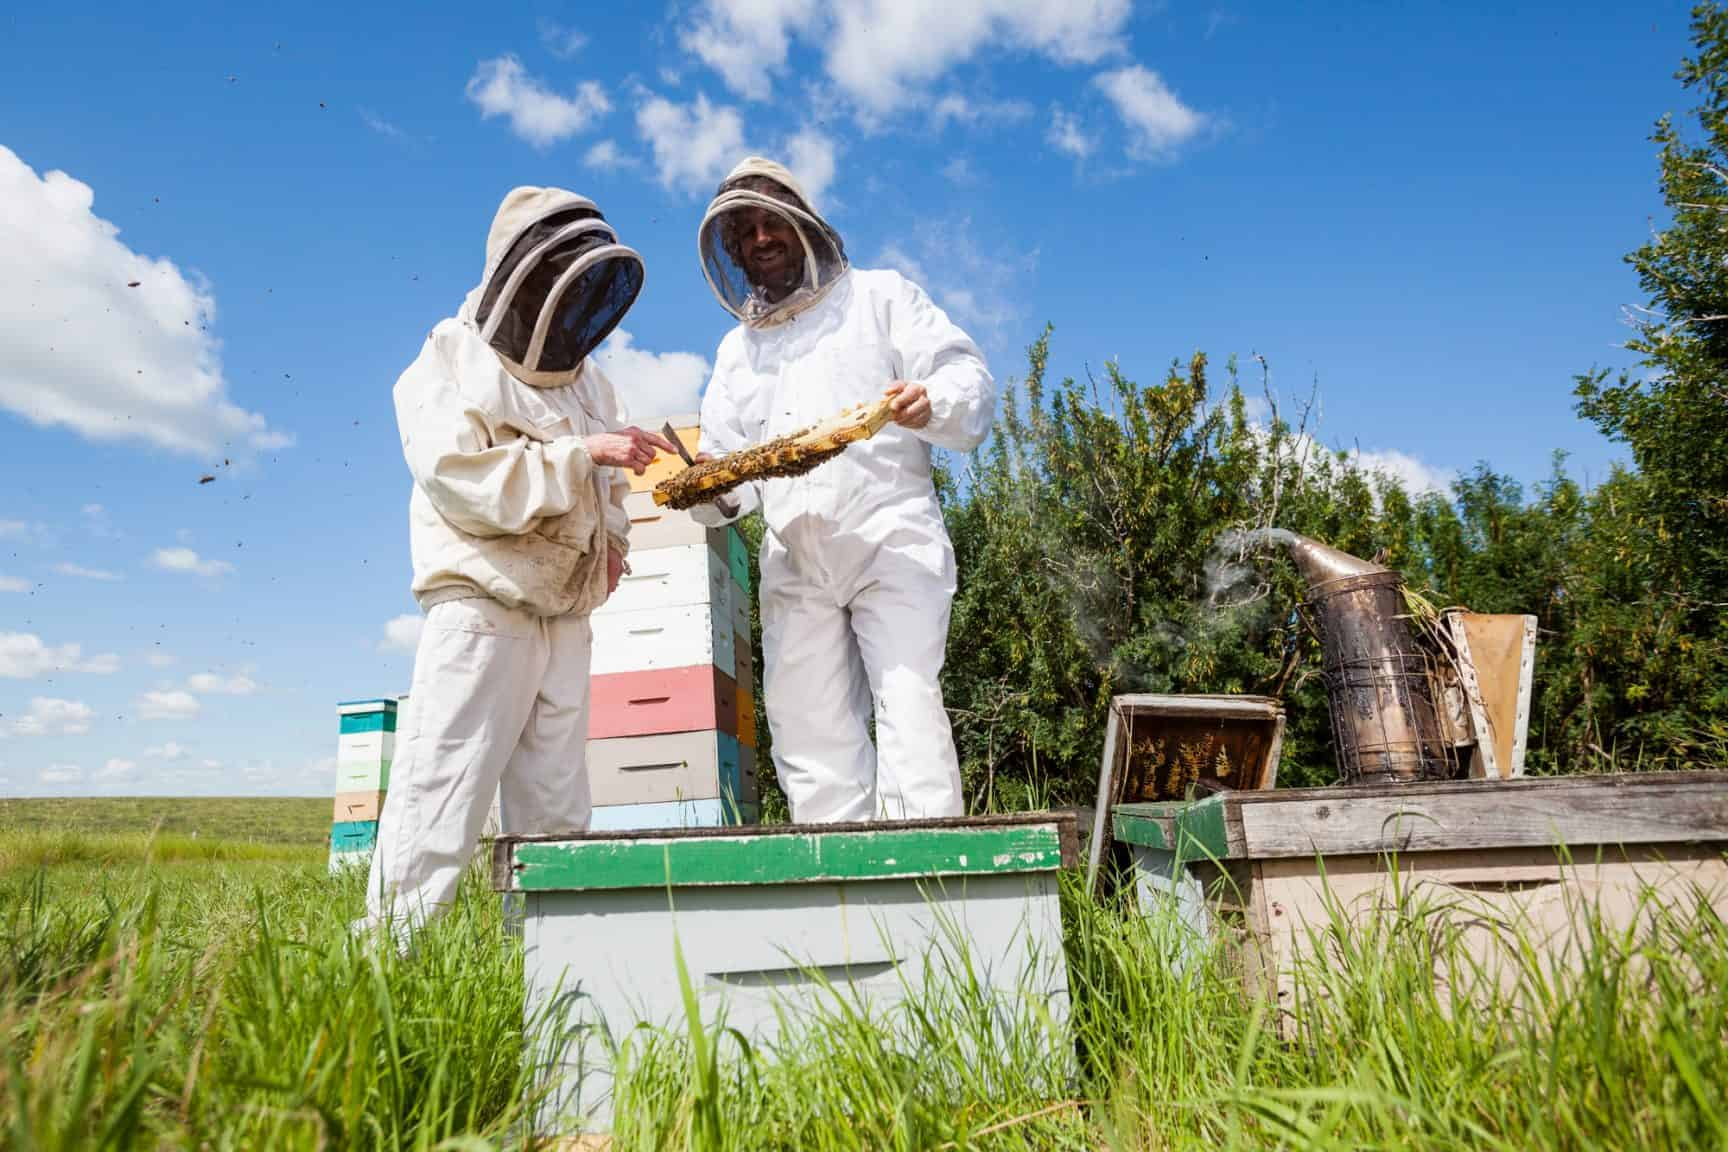 Practical guidance for the new beekeeper